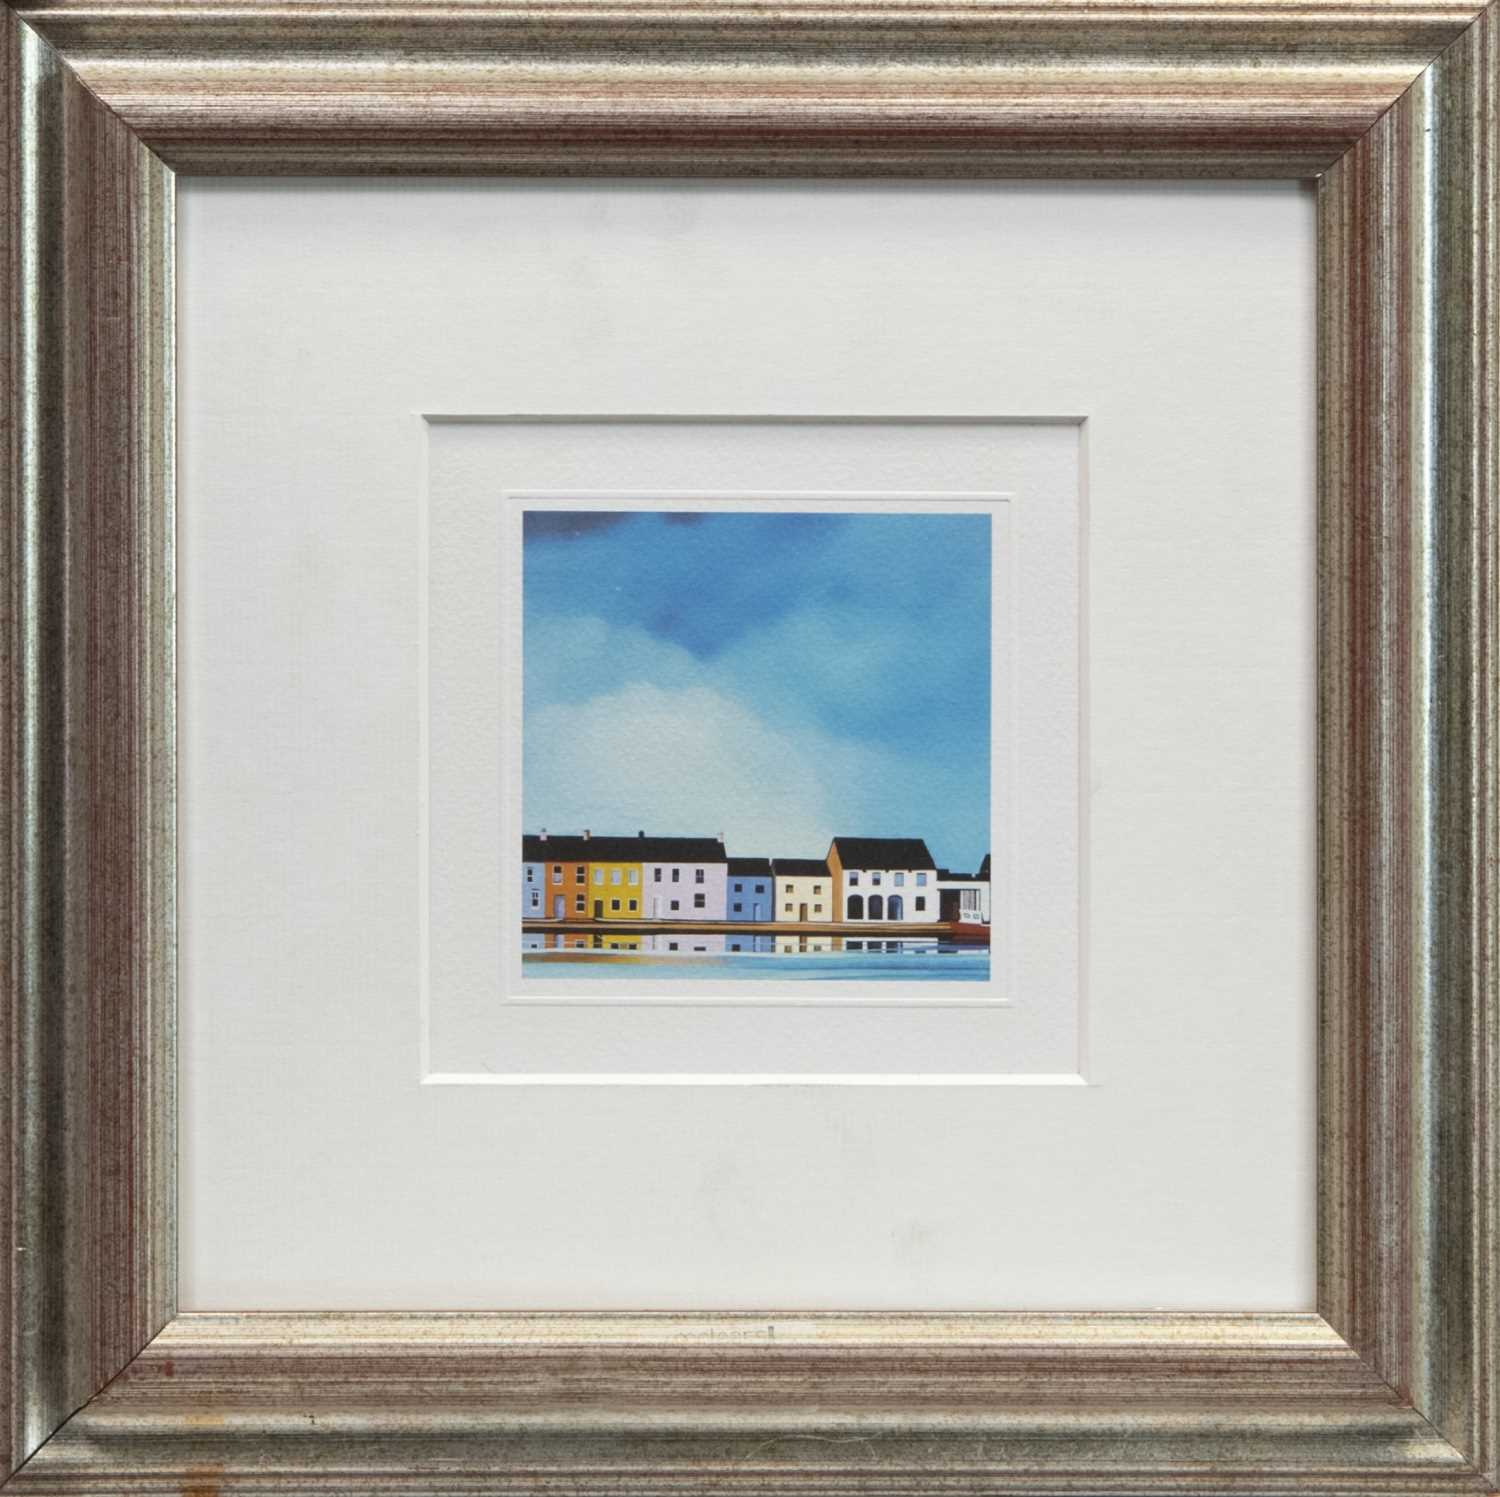 Lot 151 - BLUE DAY, A FRAMED PRINT